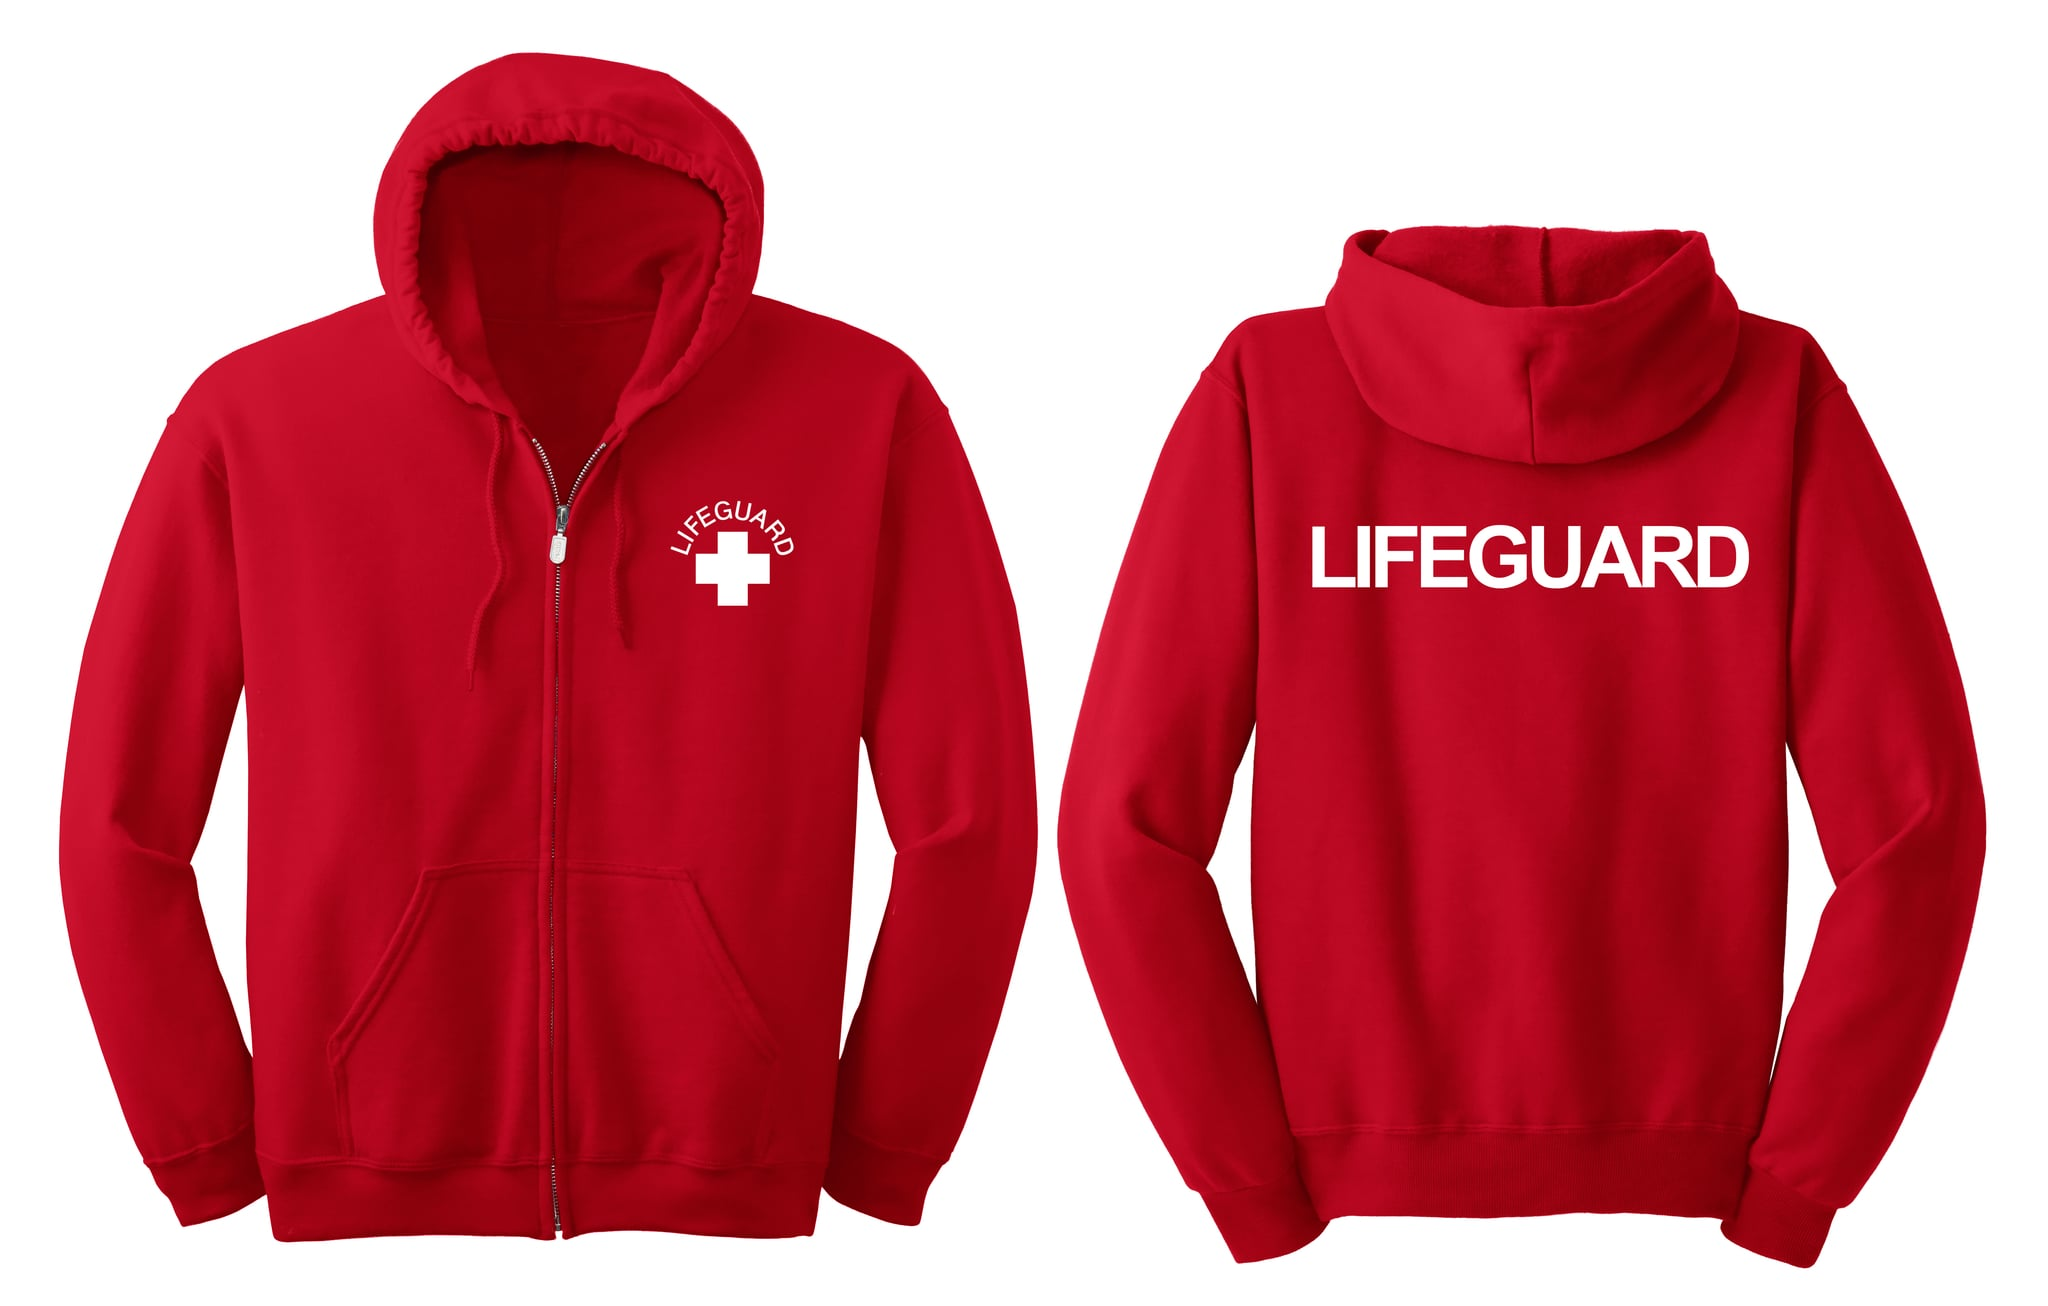 Lifeguard Zip Front Hooded Sweatshirt